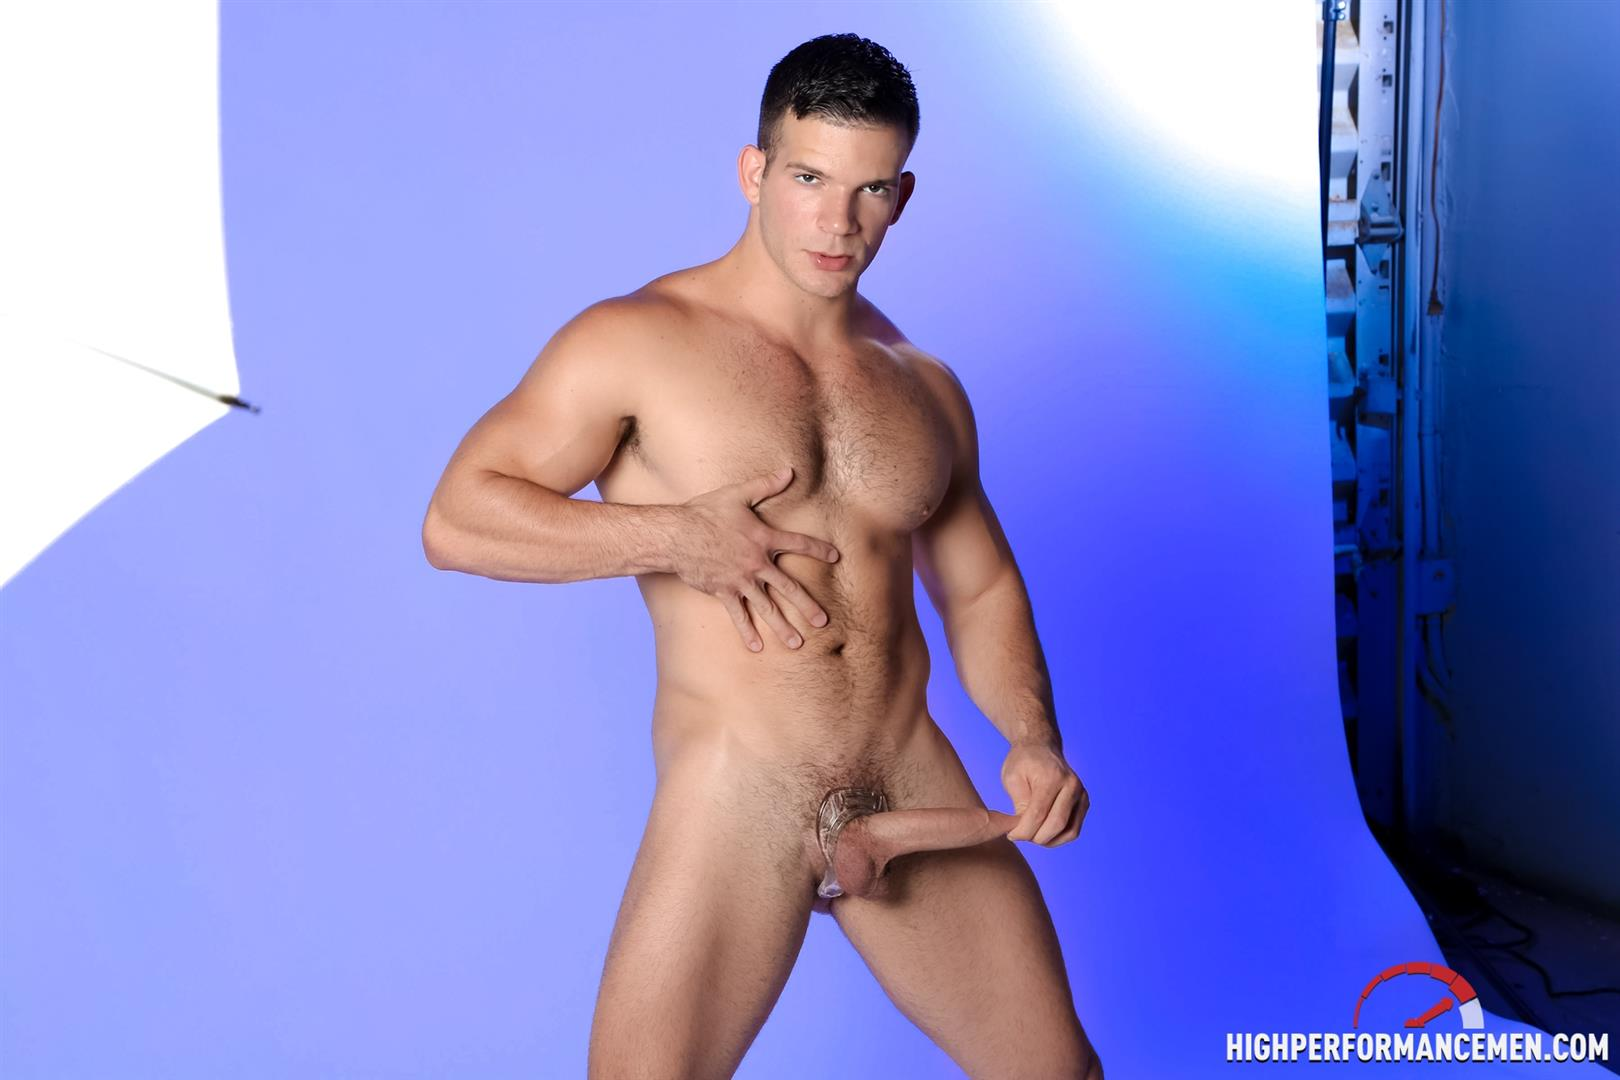 High-Performance-Men-Angel-Rock-Big-Uncut-Cock-Jerking-Off-Latino-Amateur-Gay-Porn-12 Muscle Hunk Angel Rock Jerking Off His Big Uncut Cock